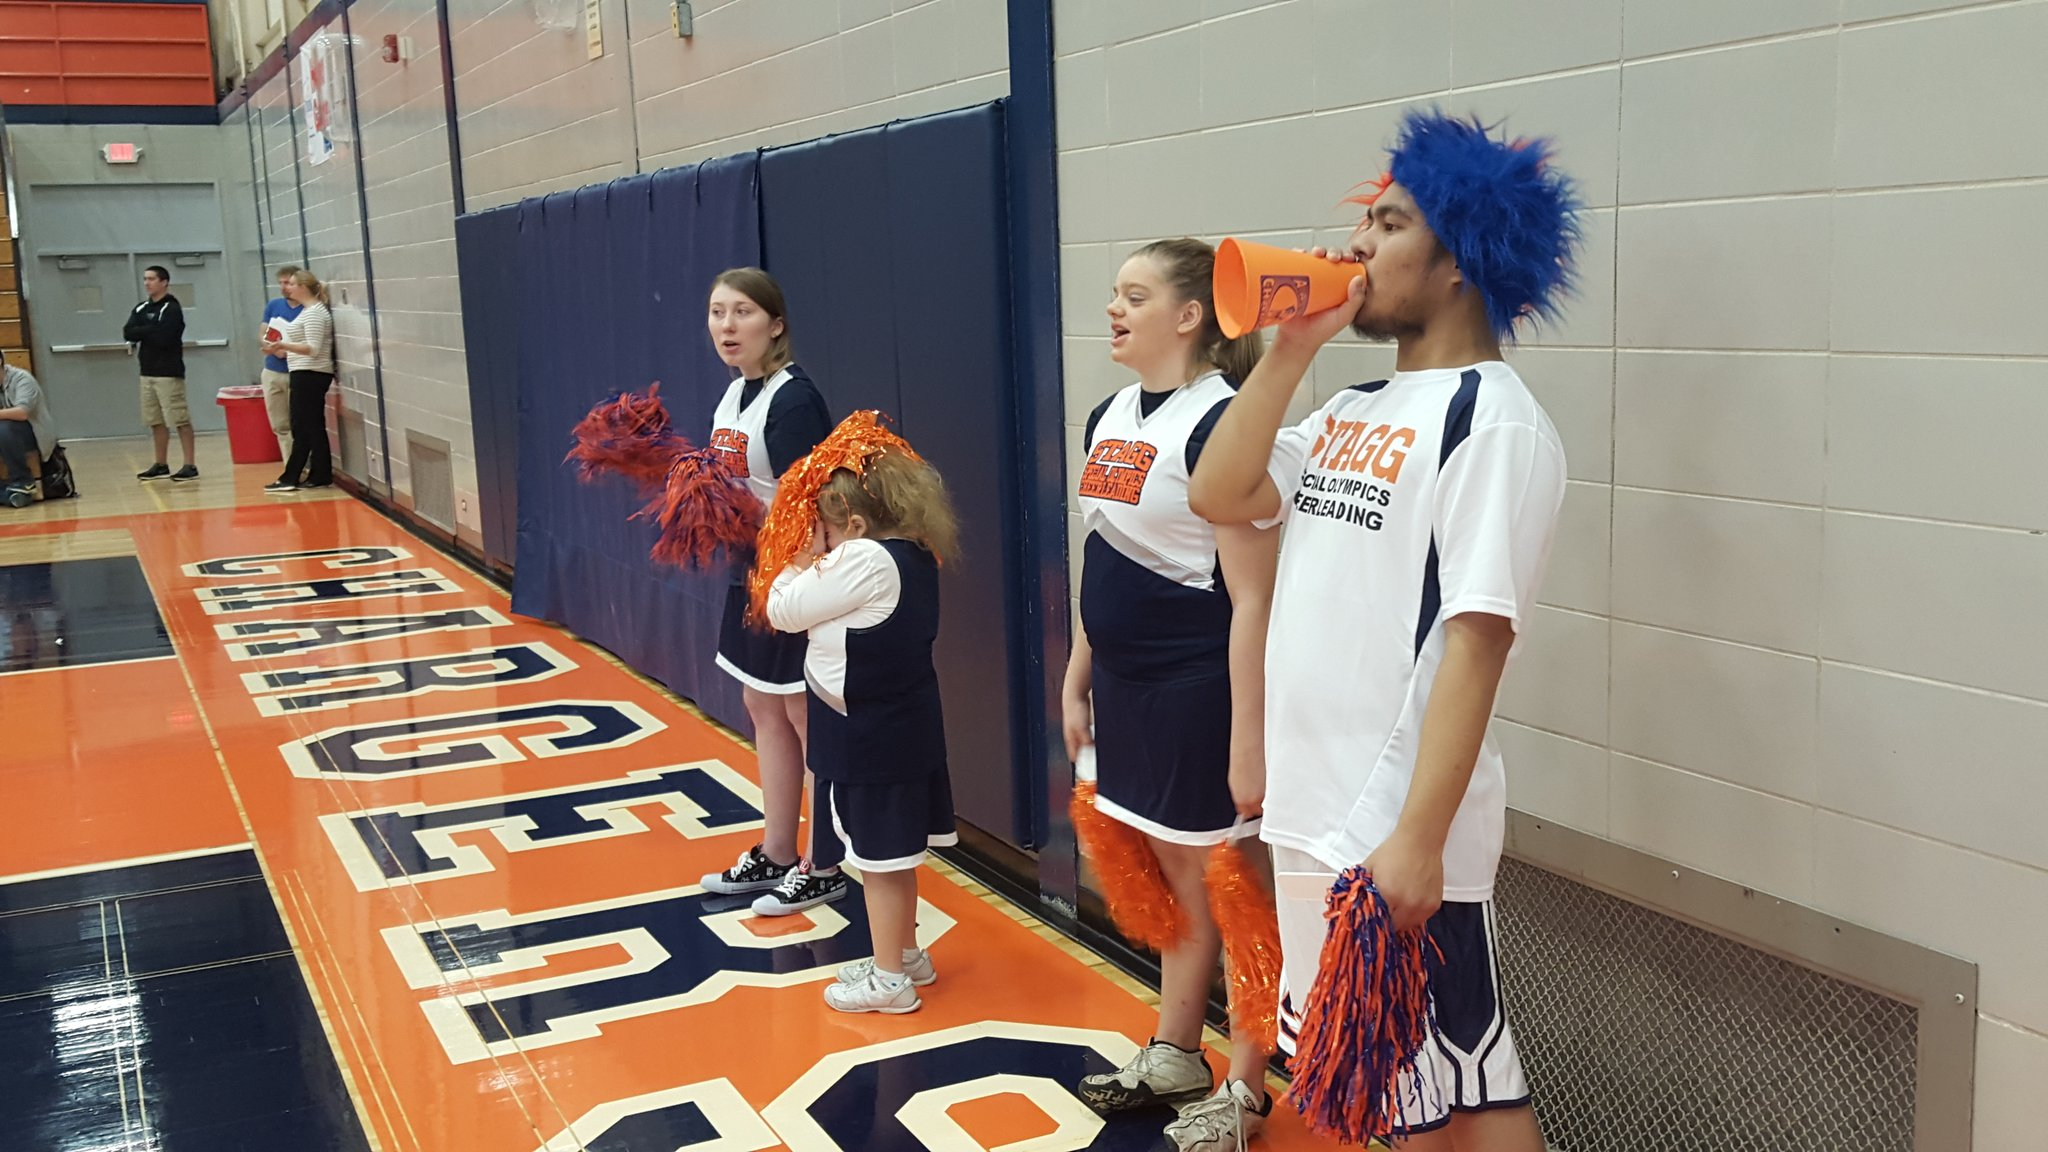 Stagg High School On Twitter Quot Exciting Day At Stagg Hosting Special Olympics Bball Game Go